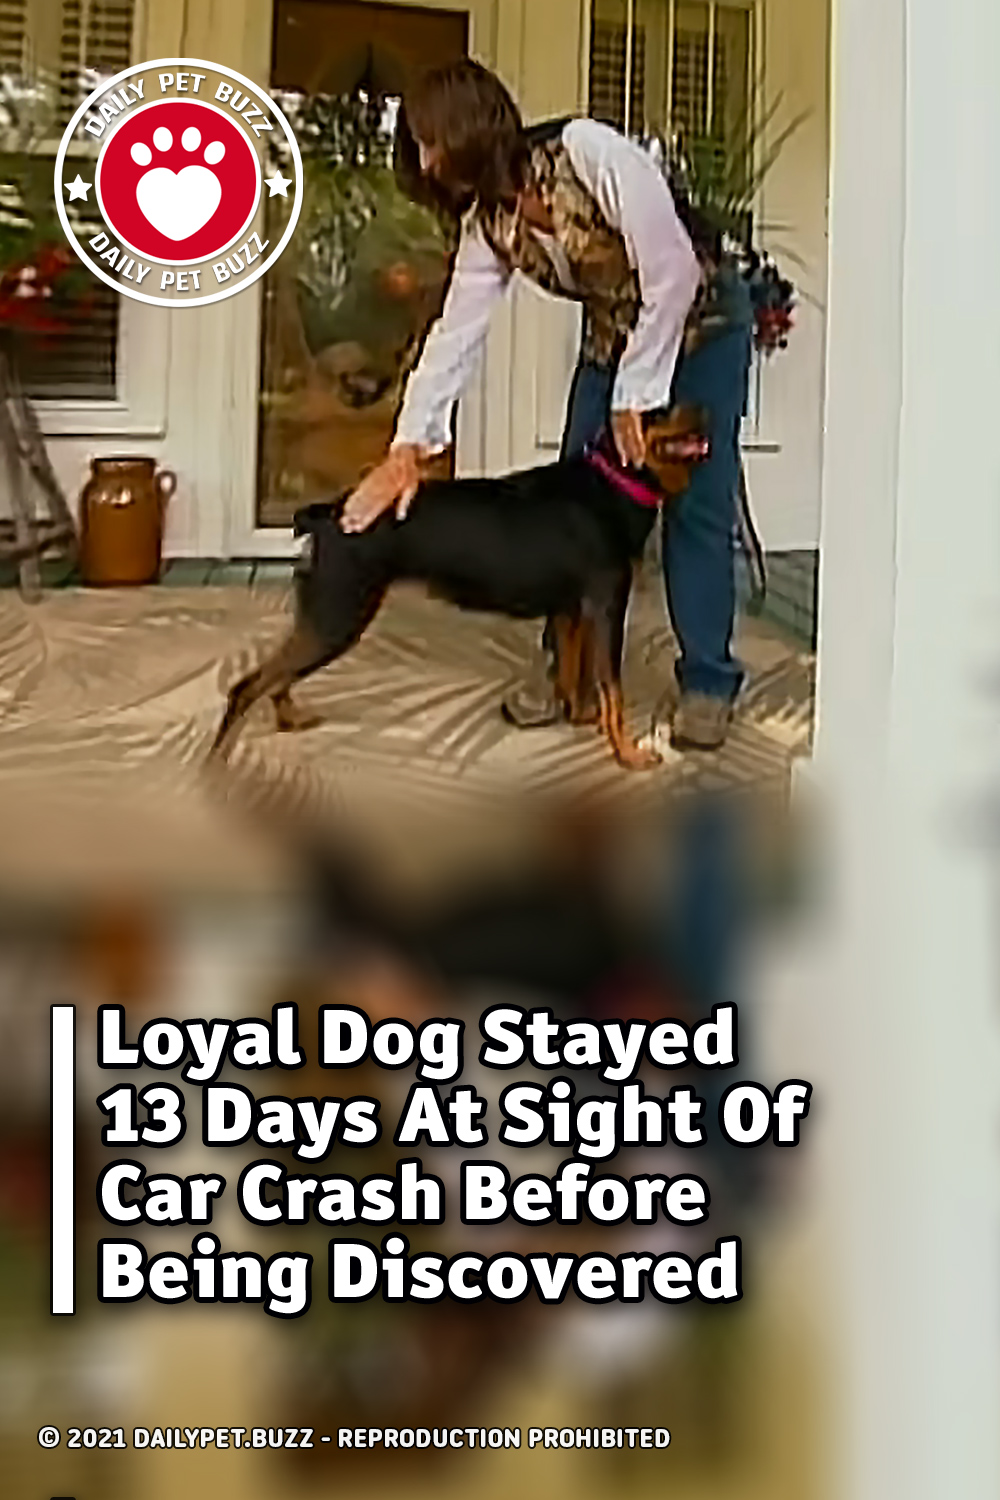 Loyal Dog Stayed 13 Days At Sight Of Car Crash Before Being Discovered